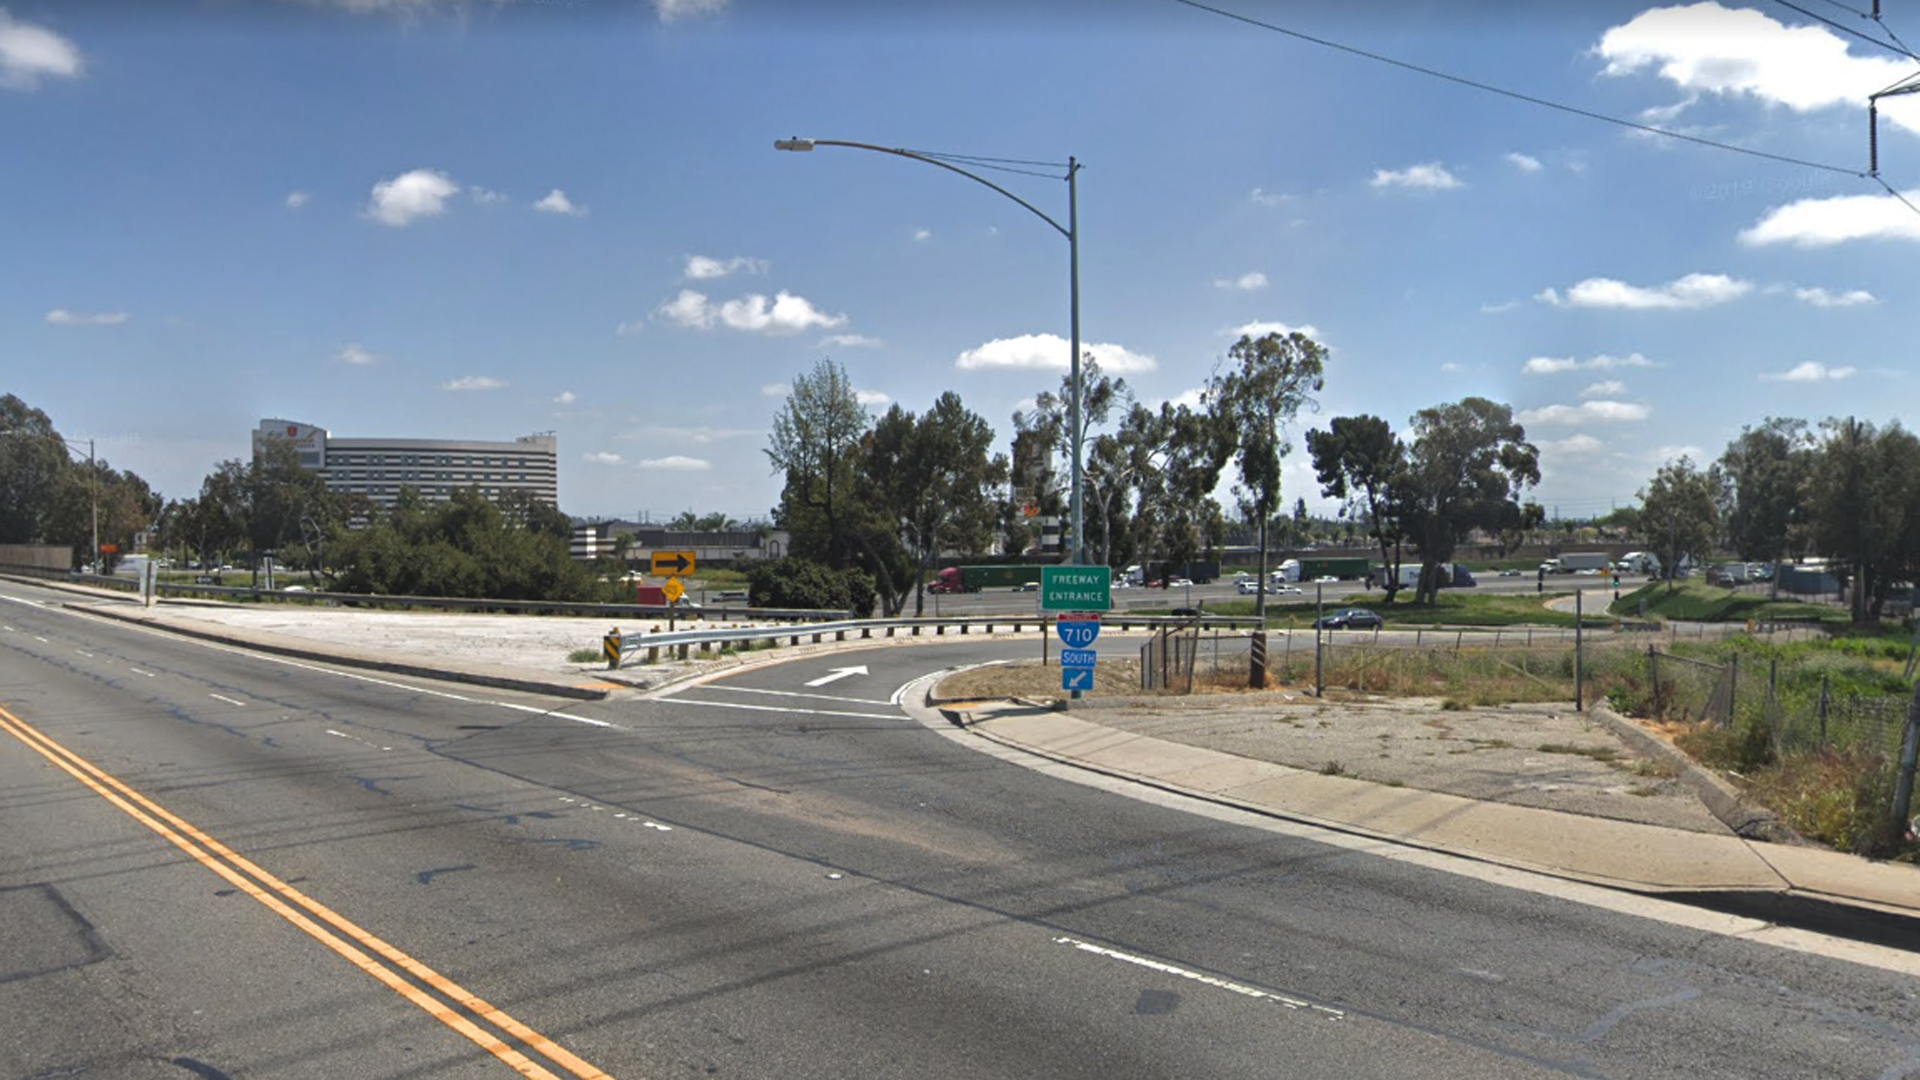 The eastbound Florence Avenue onramp to the southbound 710 Freeway in Bell, as viewed in a Google Street View image in April of 2019.